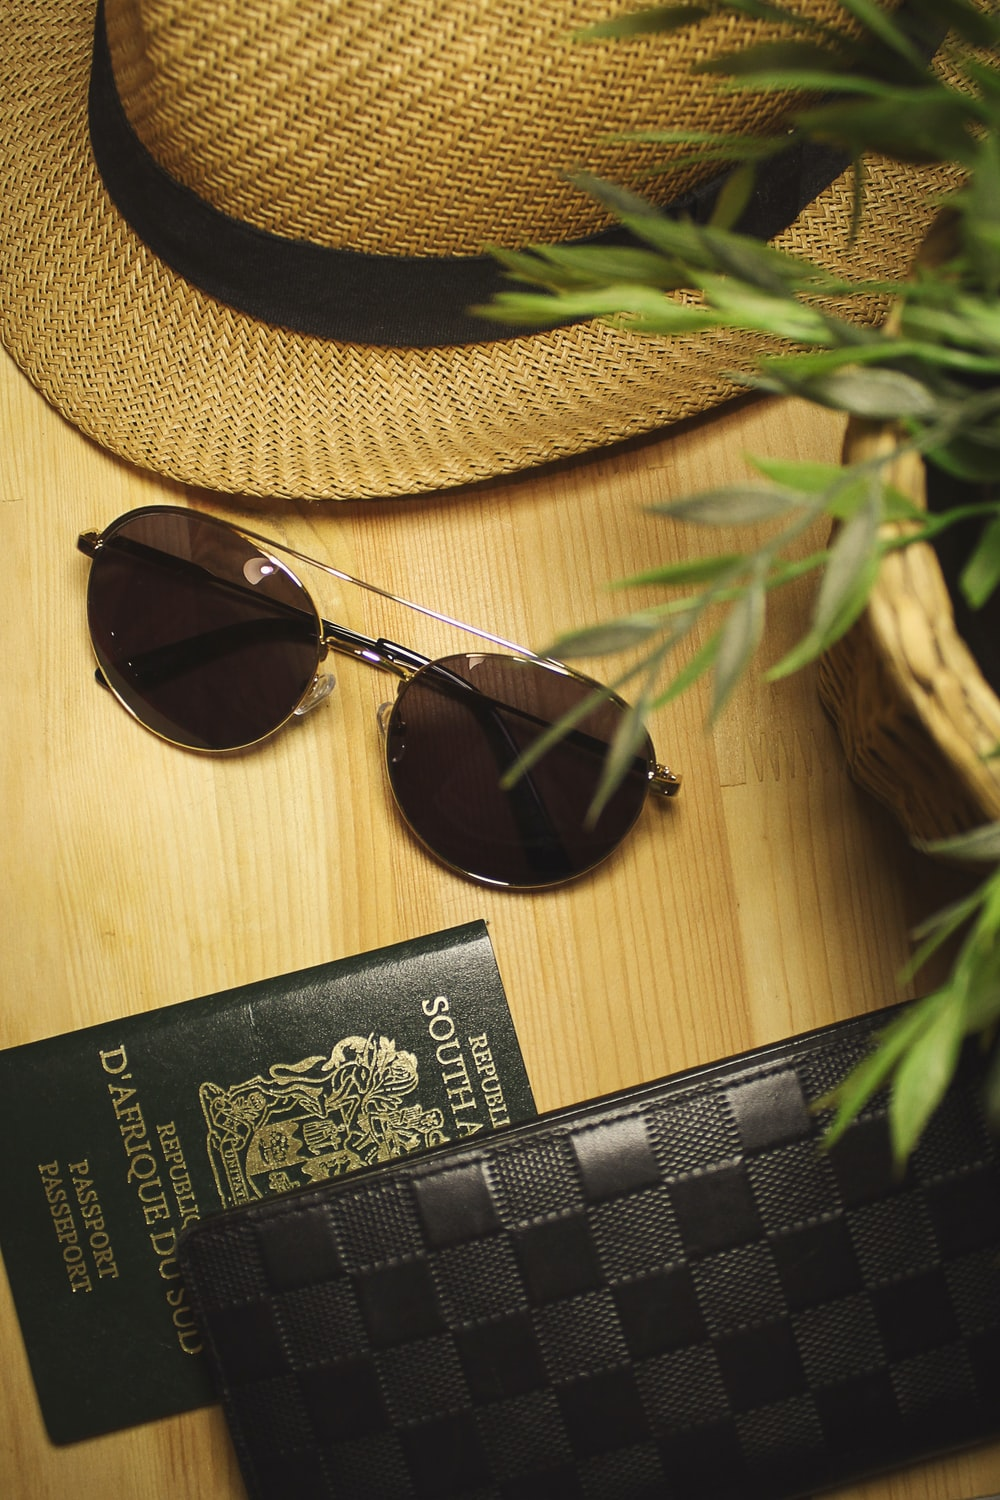 black Louis Vuitton leather wallet beside passport and sunglasses